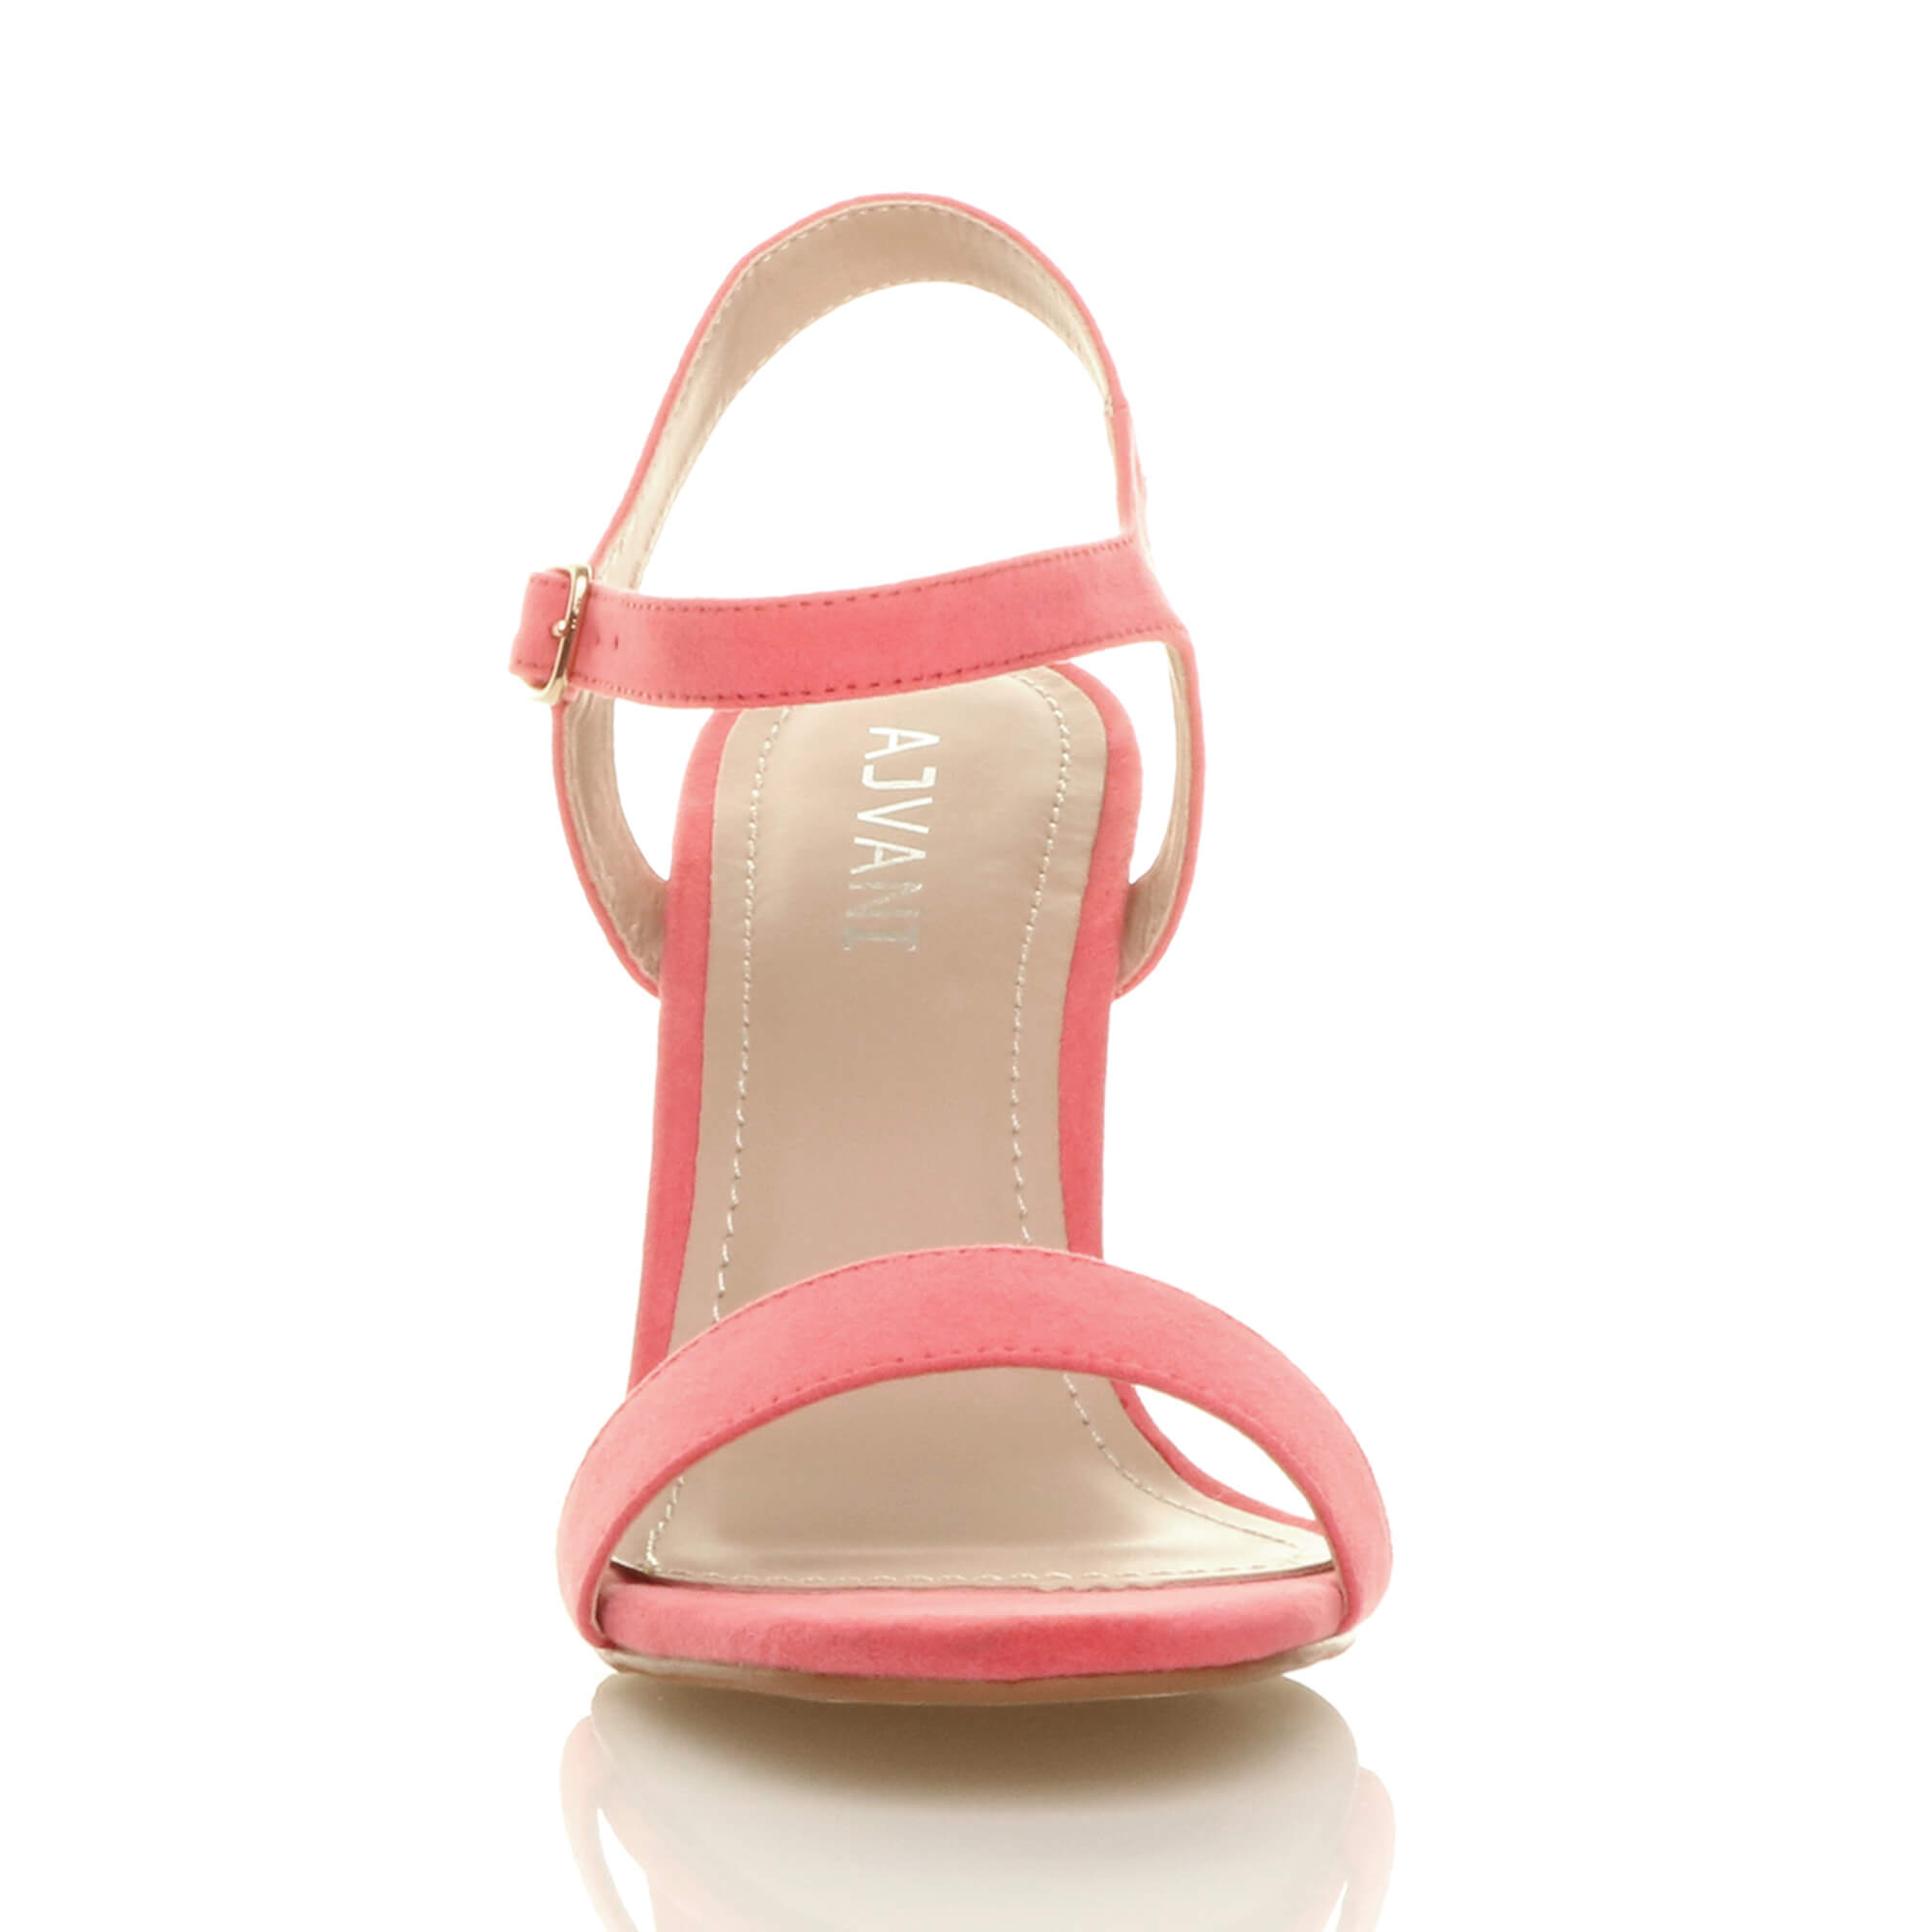 WOMENS-LADIES-HIGH-HEEL-BUCKLE-STRAPPY-BASIC-BARELY-THERE-SANDALS-SHOES-SIZE thumbnail 27